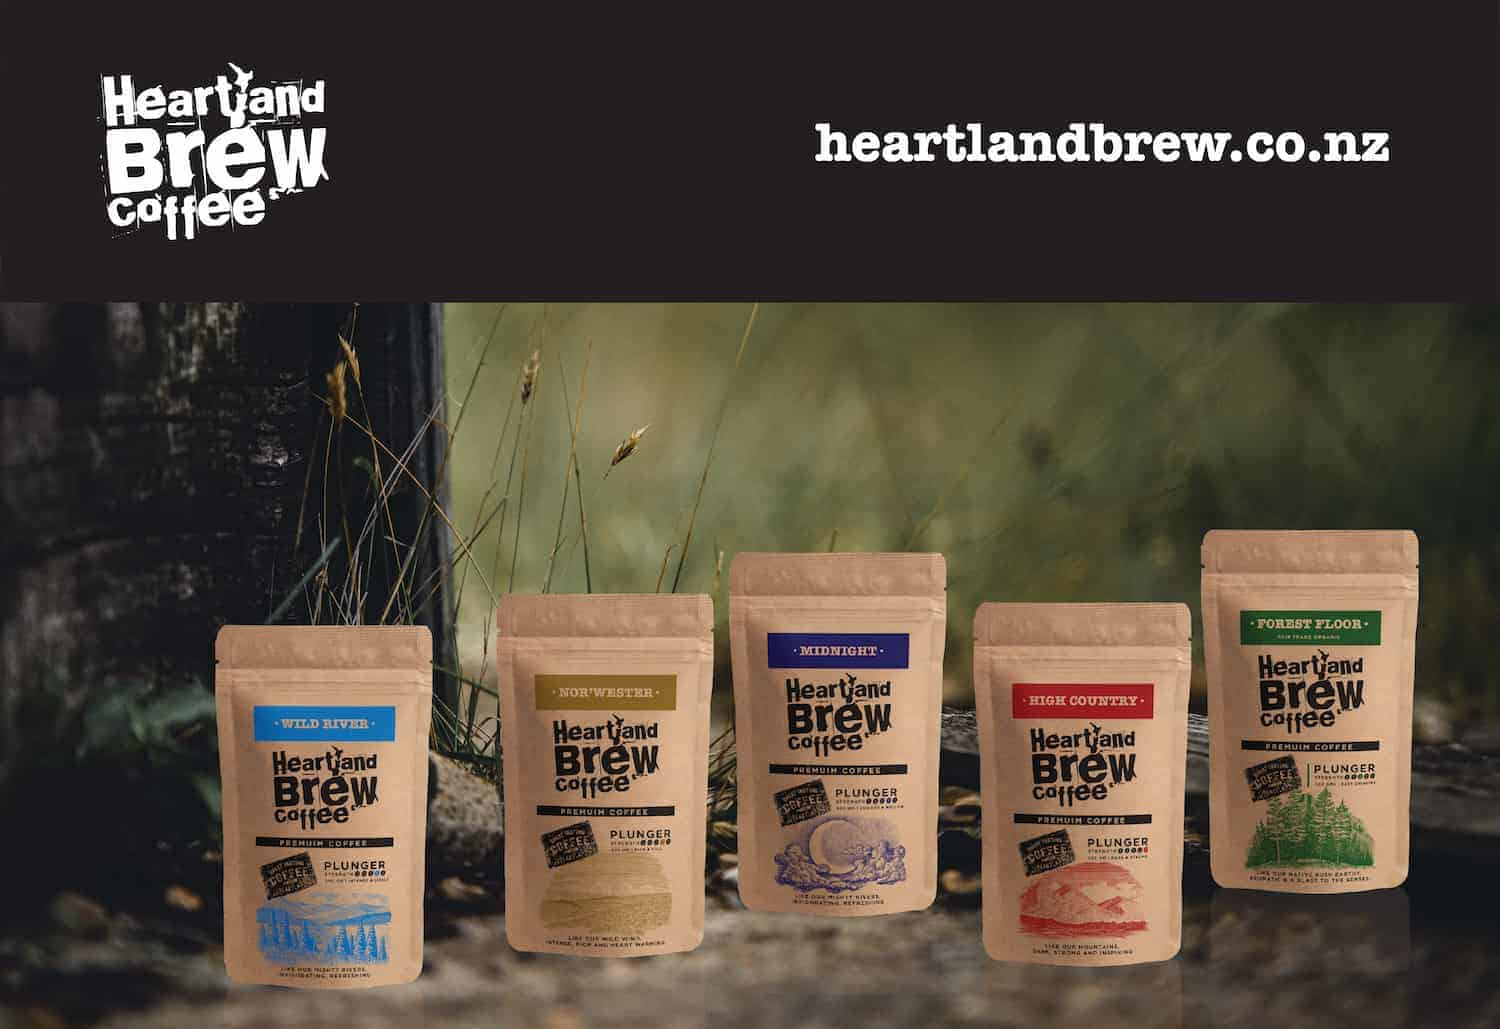 Heartland Brew Coffee Bags